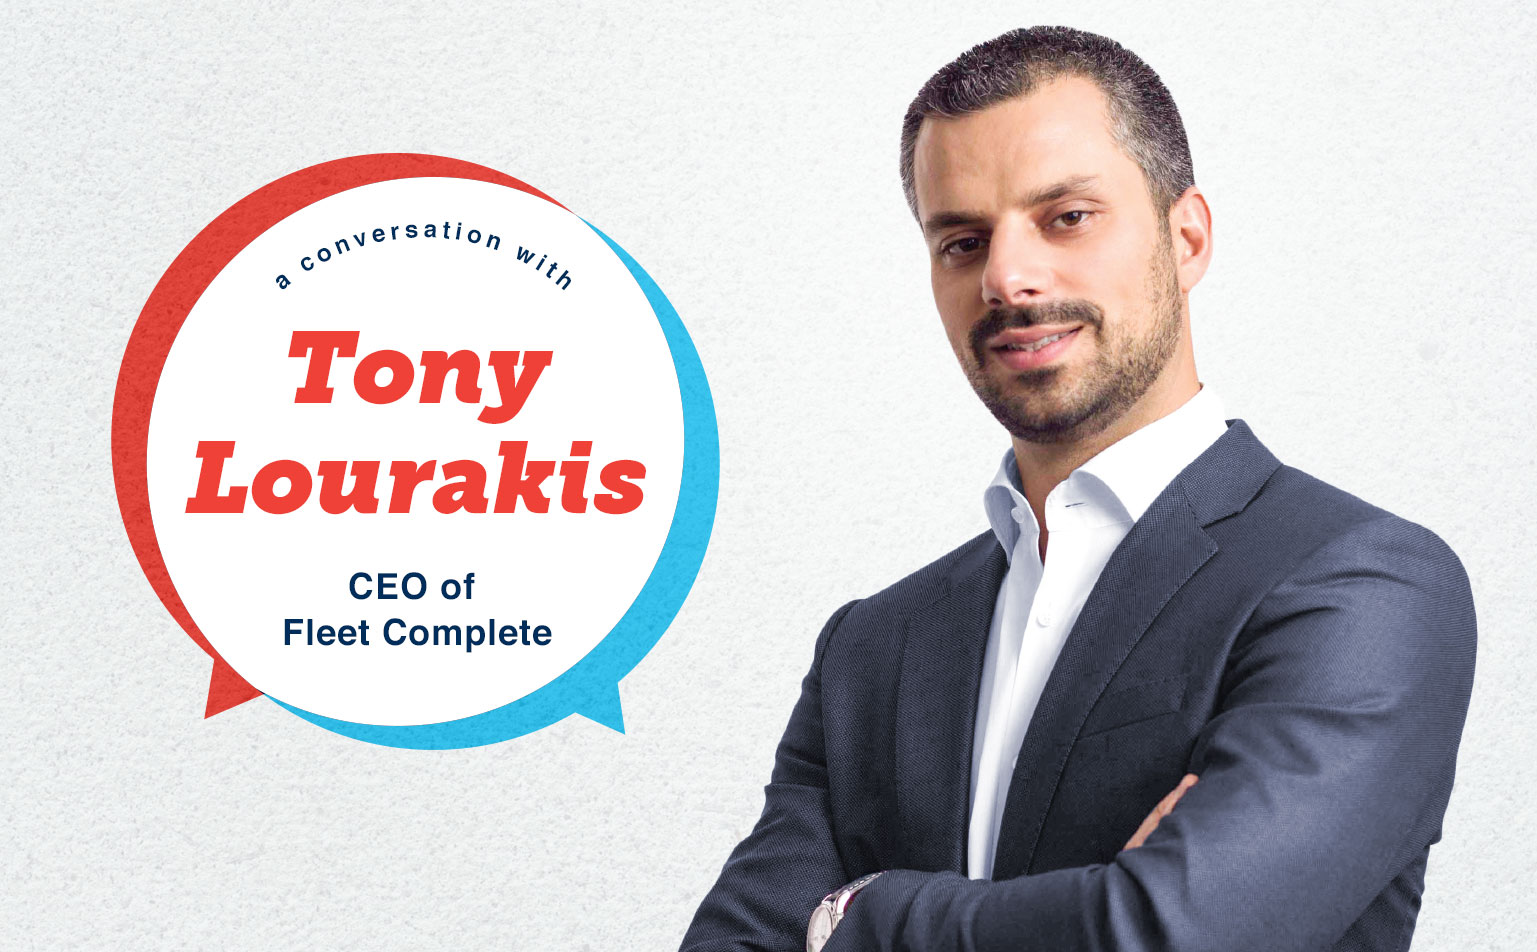 The Art of the Possible In Conversation w/ Tony Lourakis (CEO @ Fleet Complete)